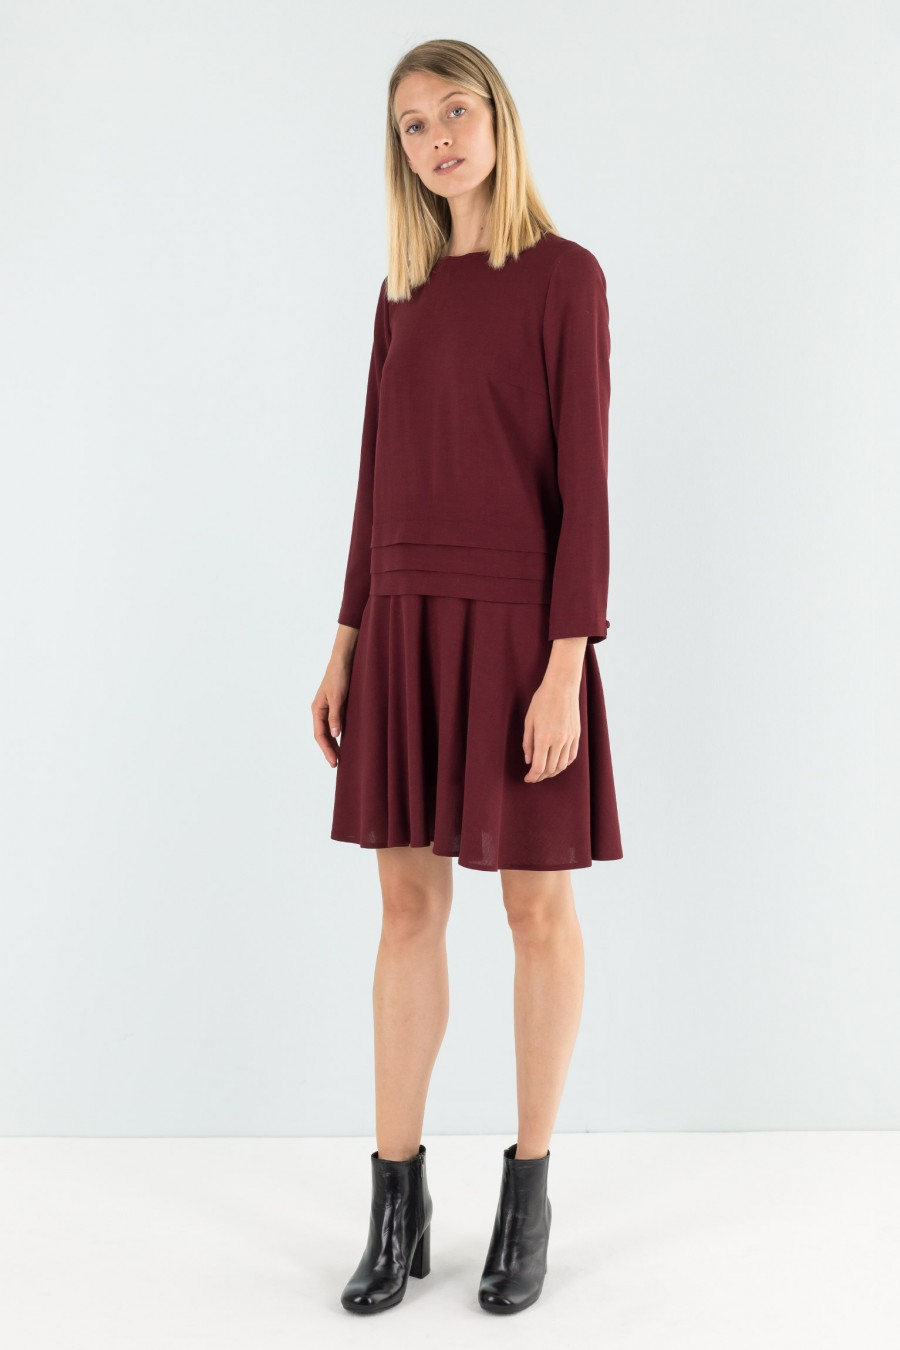 Lazzari fall burgundy dress